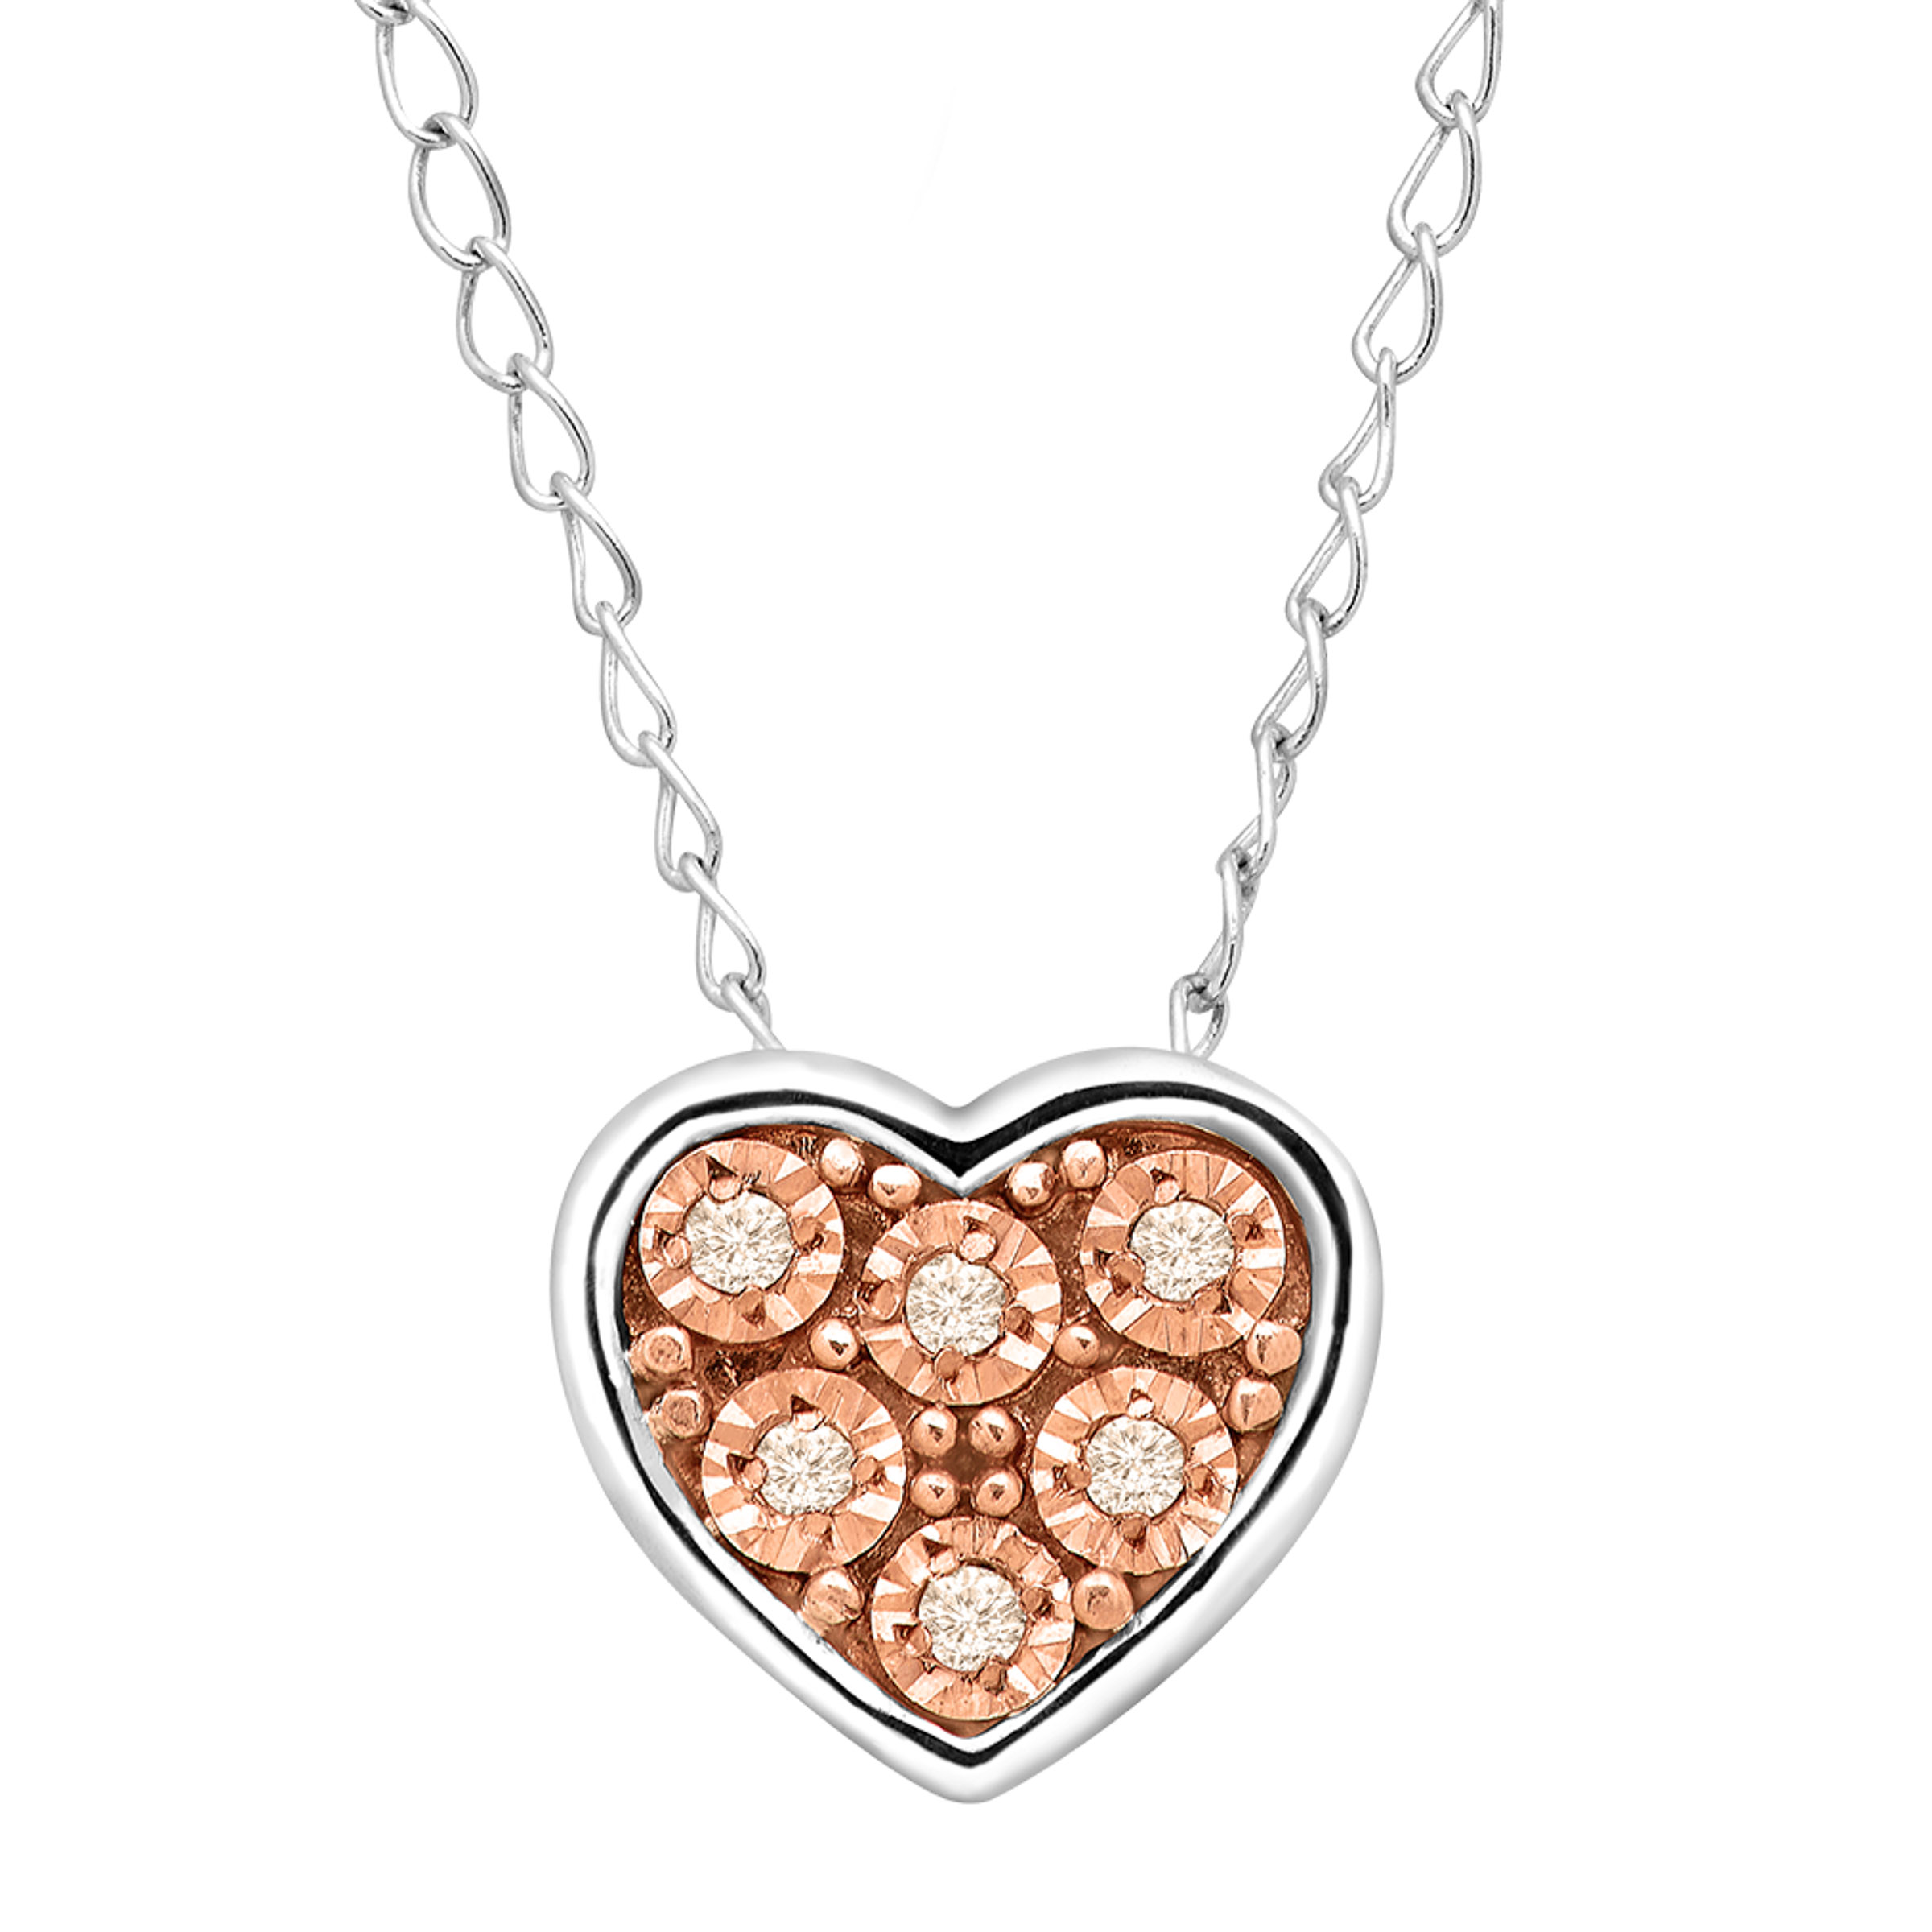 Finecraft Teeny Tiny Heart Pendant with Champagne Diamonds